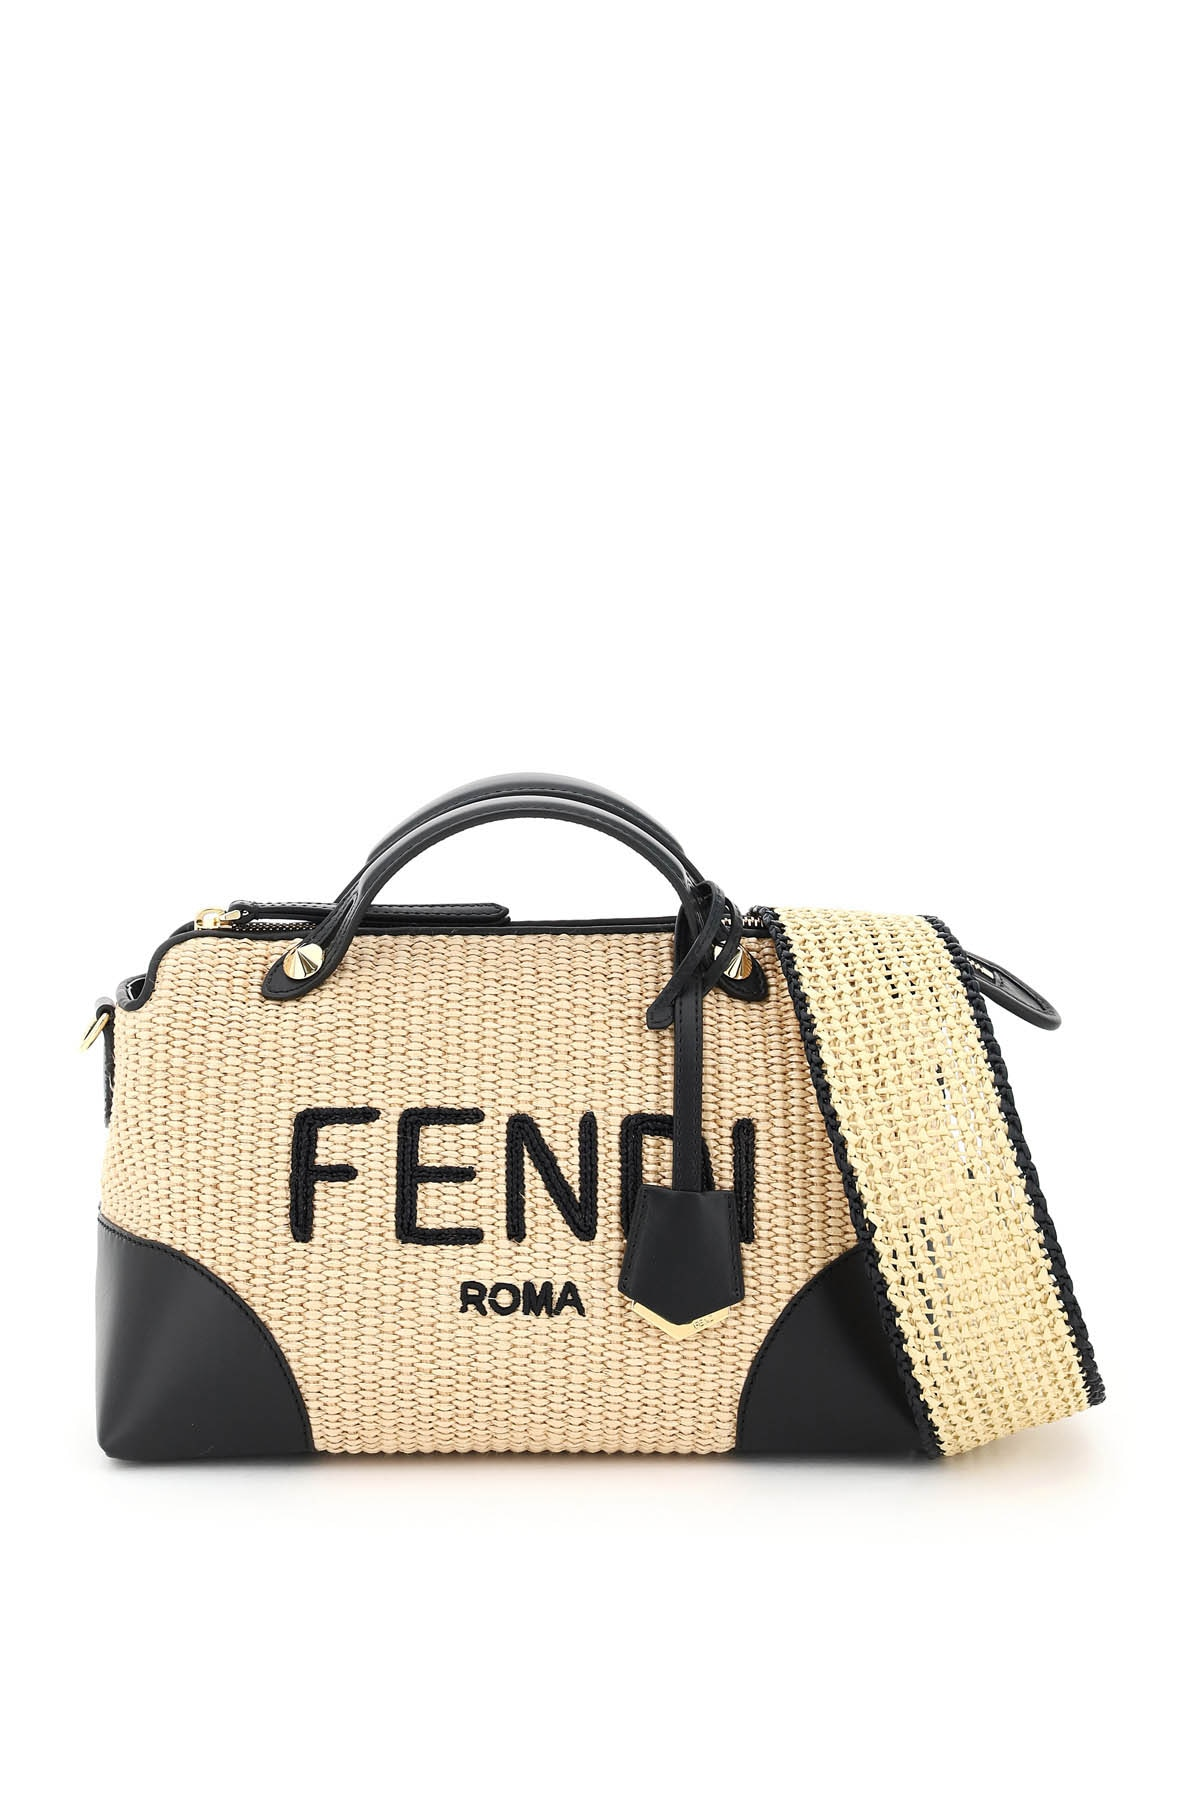 FENDI BY THE WAY MEDIUM BAG OS Black, Beige Leather, Cotton